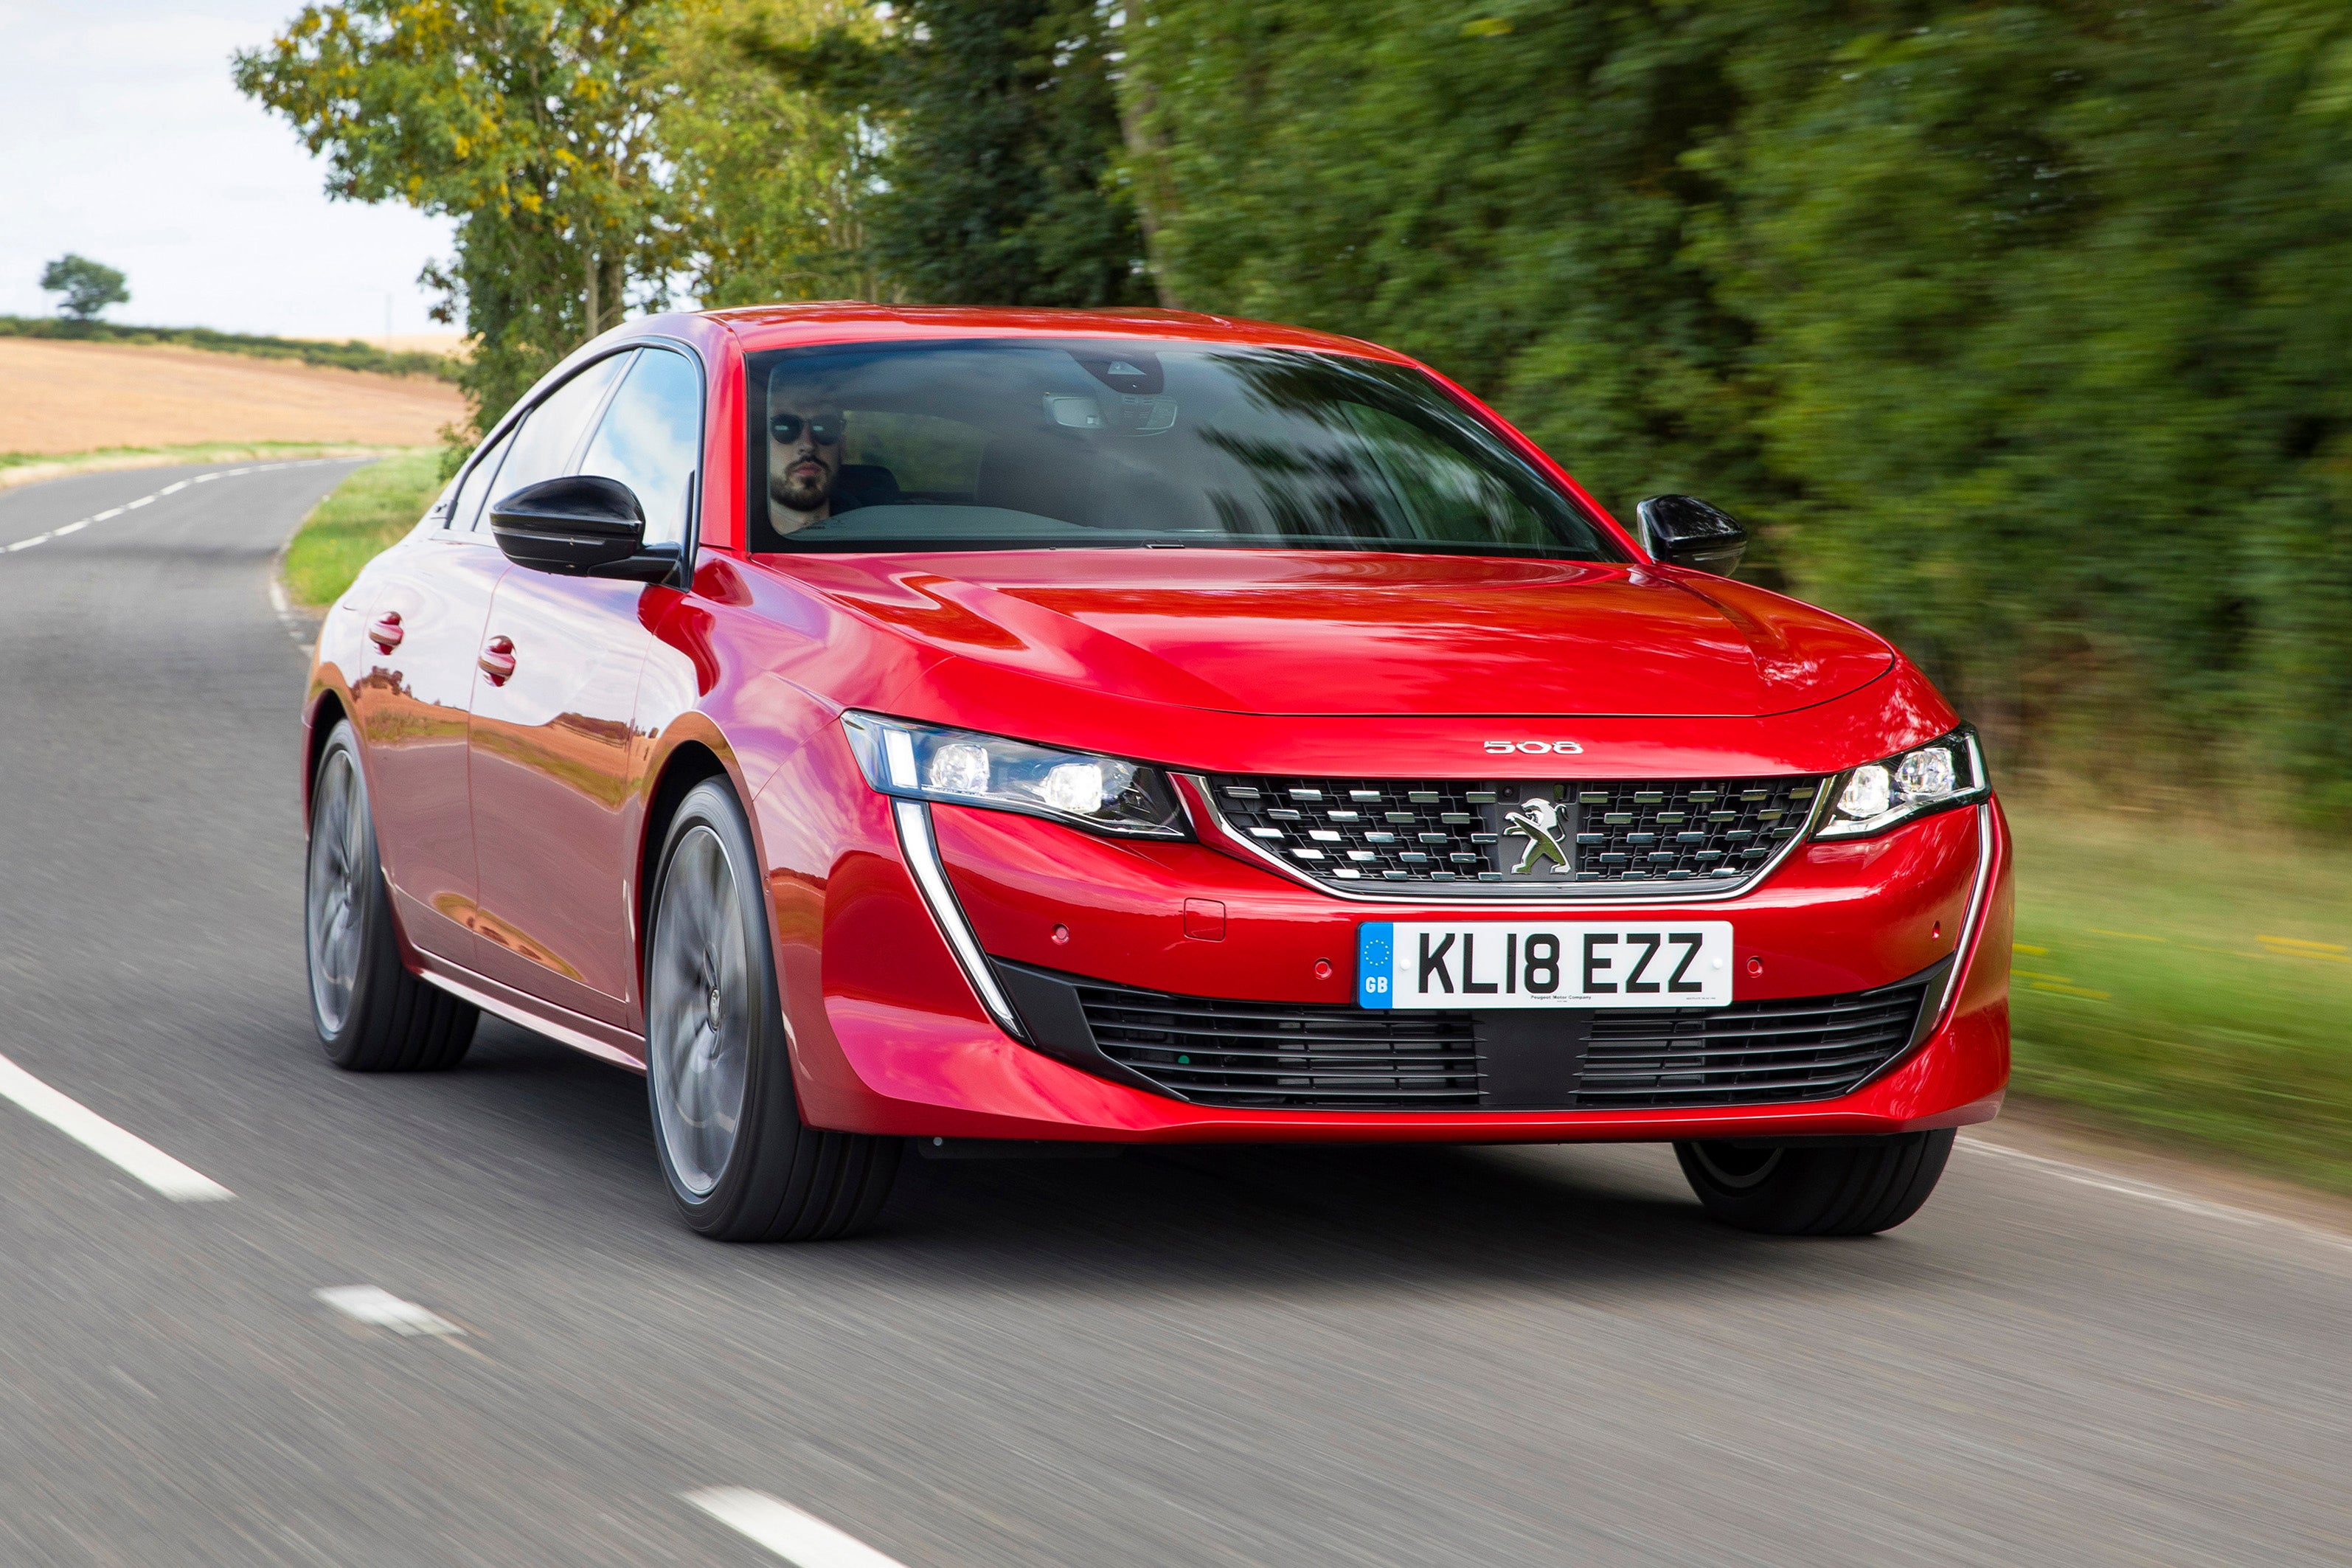 Peugeot 508 Front View